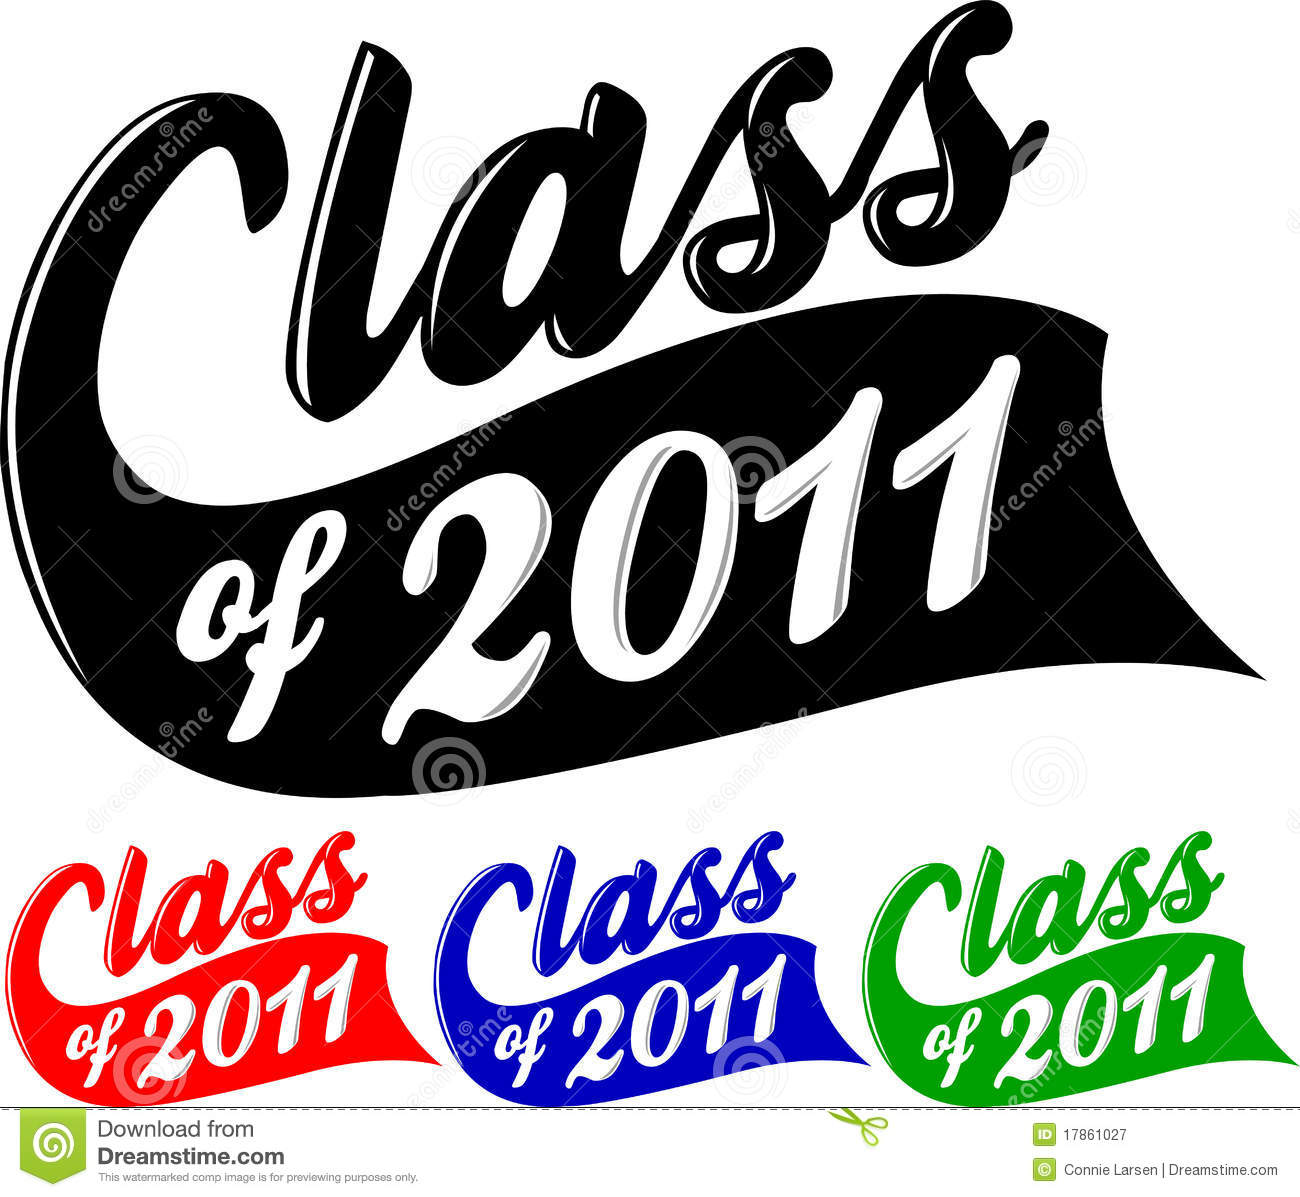 Class of 2011 clipart vector freeuse Class of 2011 clipart - ClipartFest vector freeuse